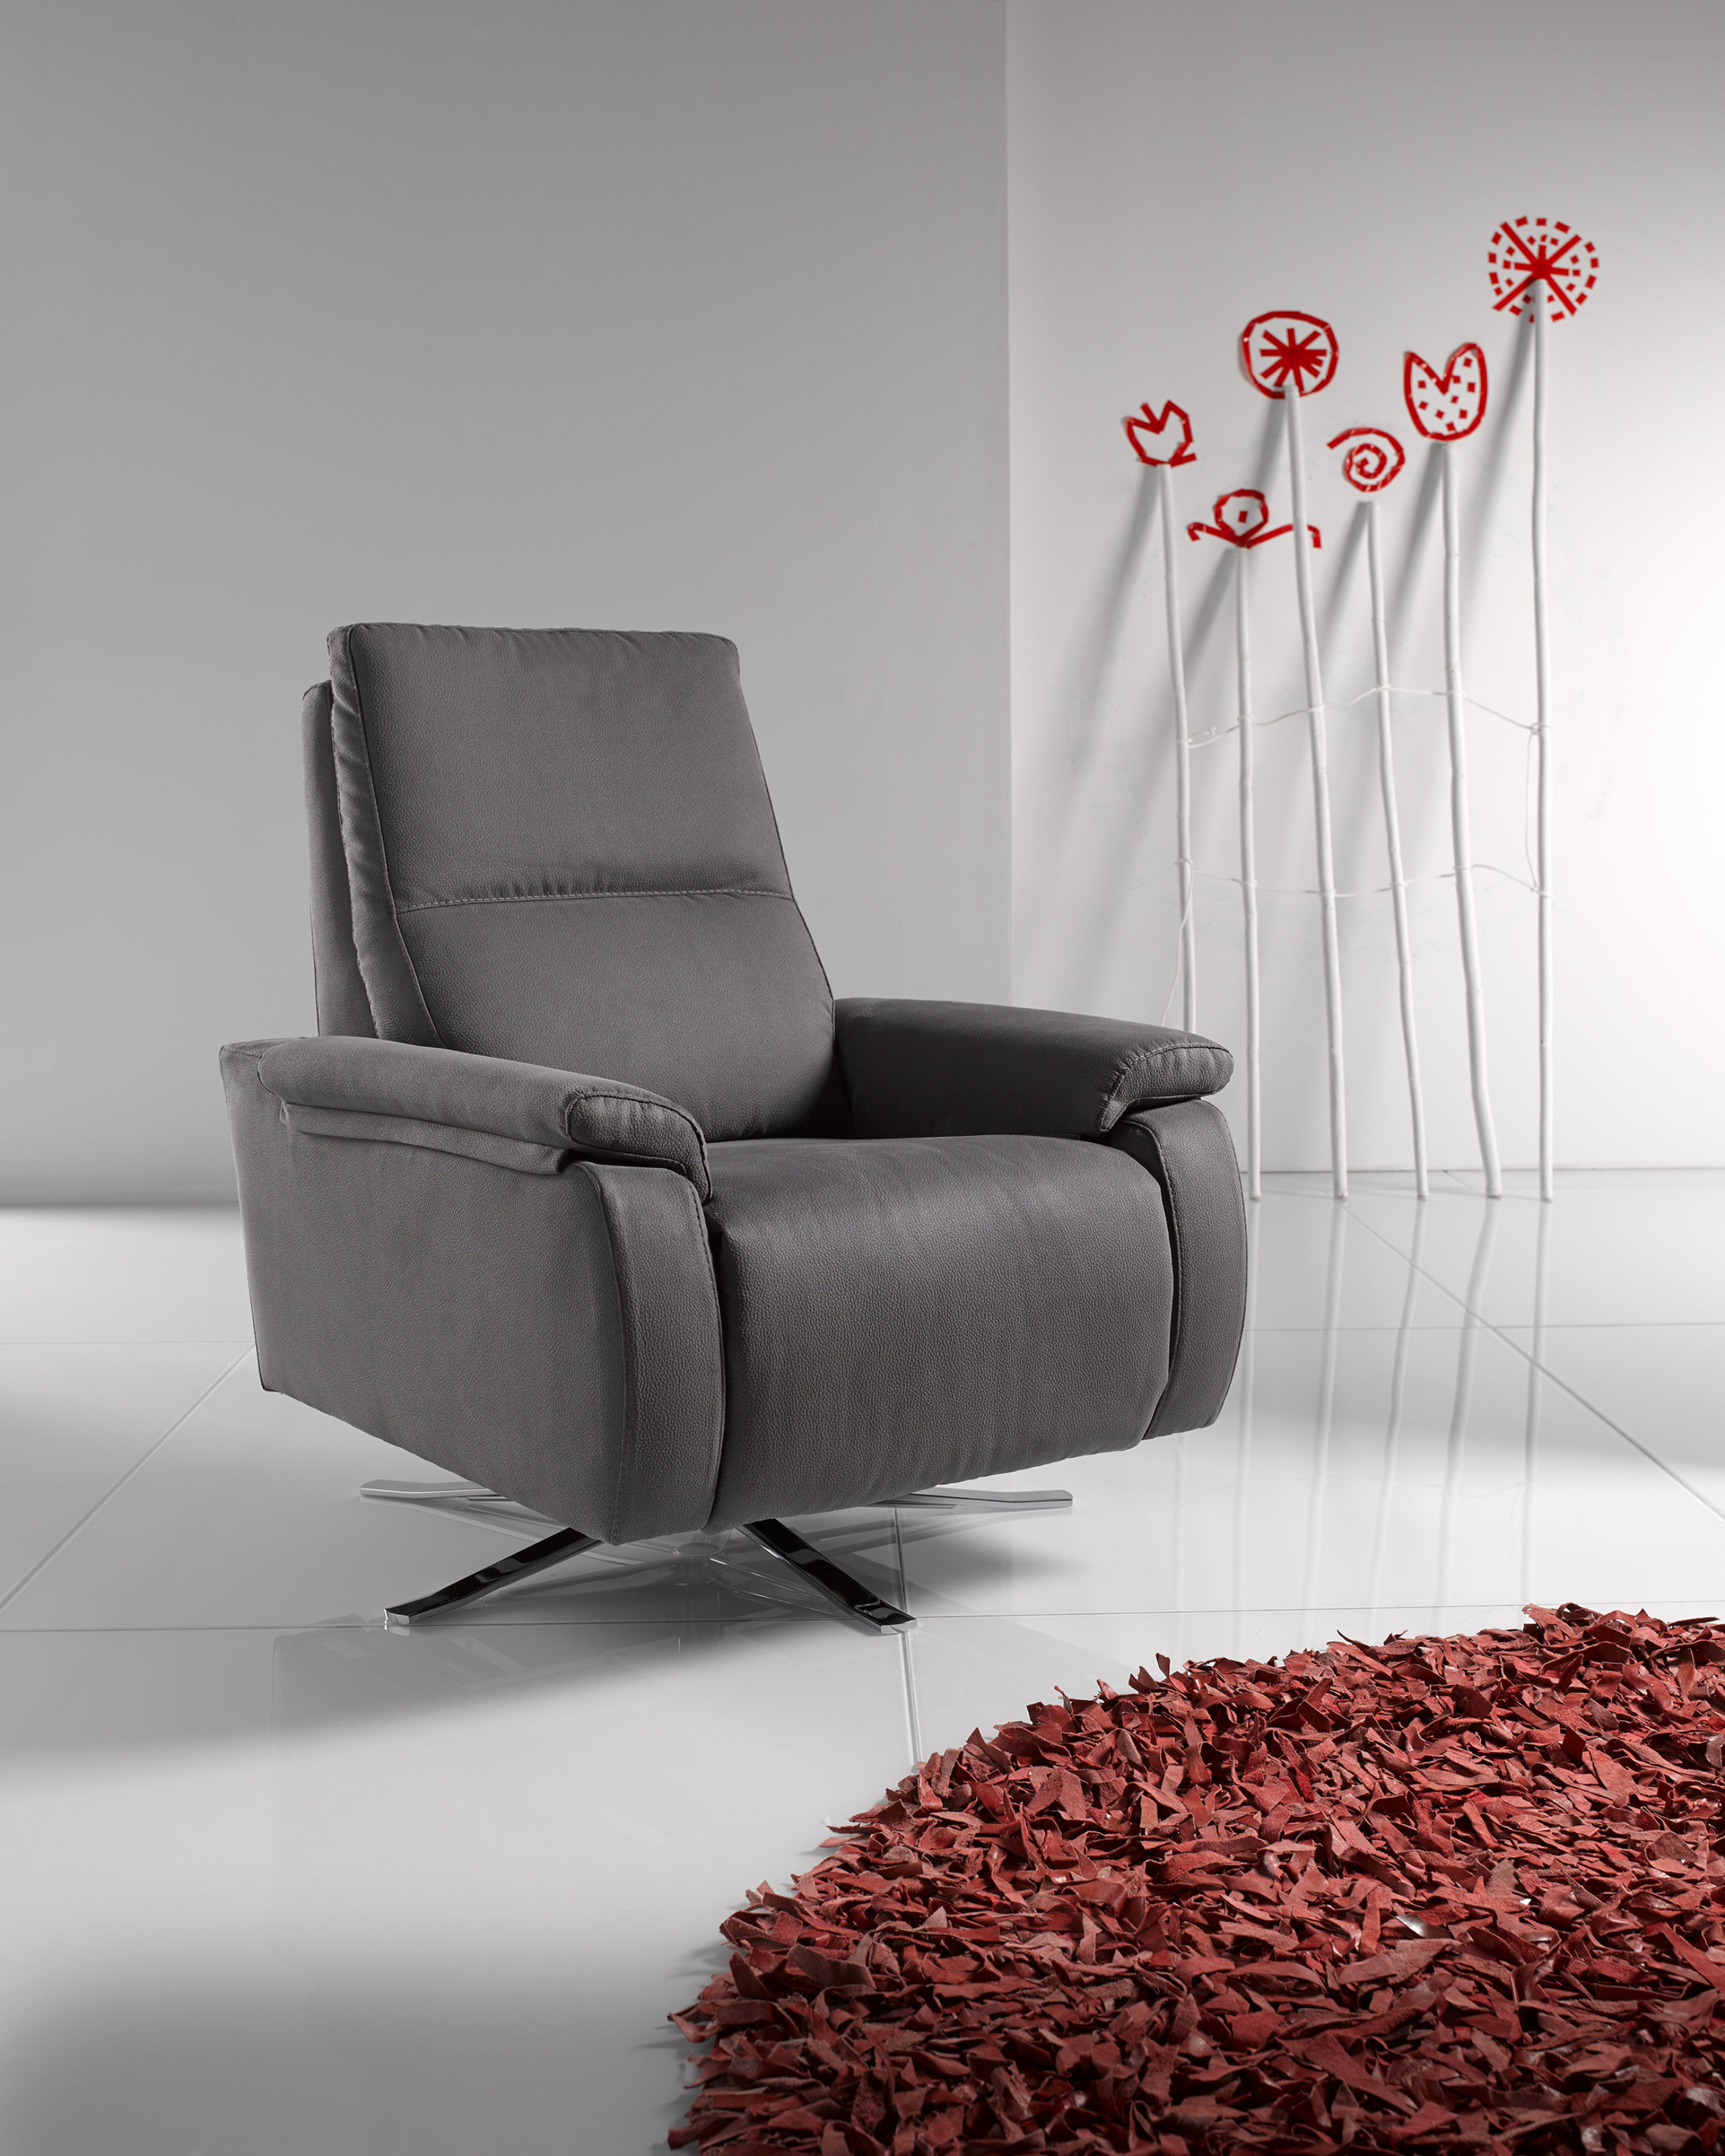 Astonishing Candy Leather Reclining Revolving Designer Chair Onthecornerstone Fun Painted Chair Ideas Images Onthecornerstoneorg